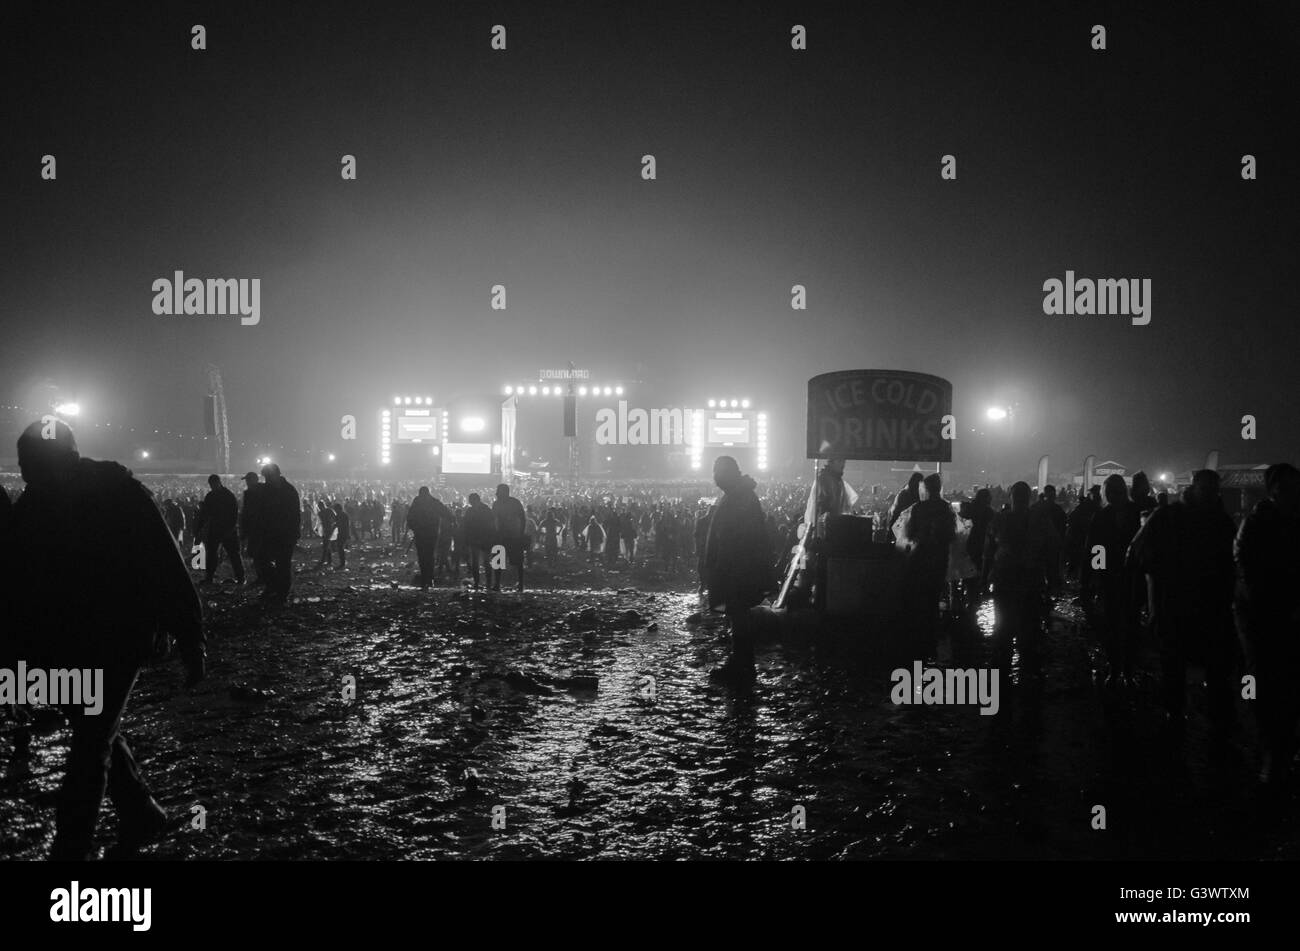 thousands of people leaving the main stage at download music festival late at night in mud after last band - Stock Image